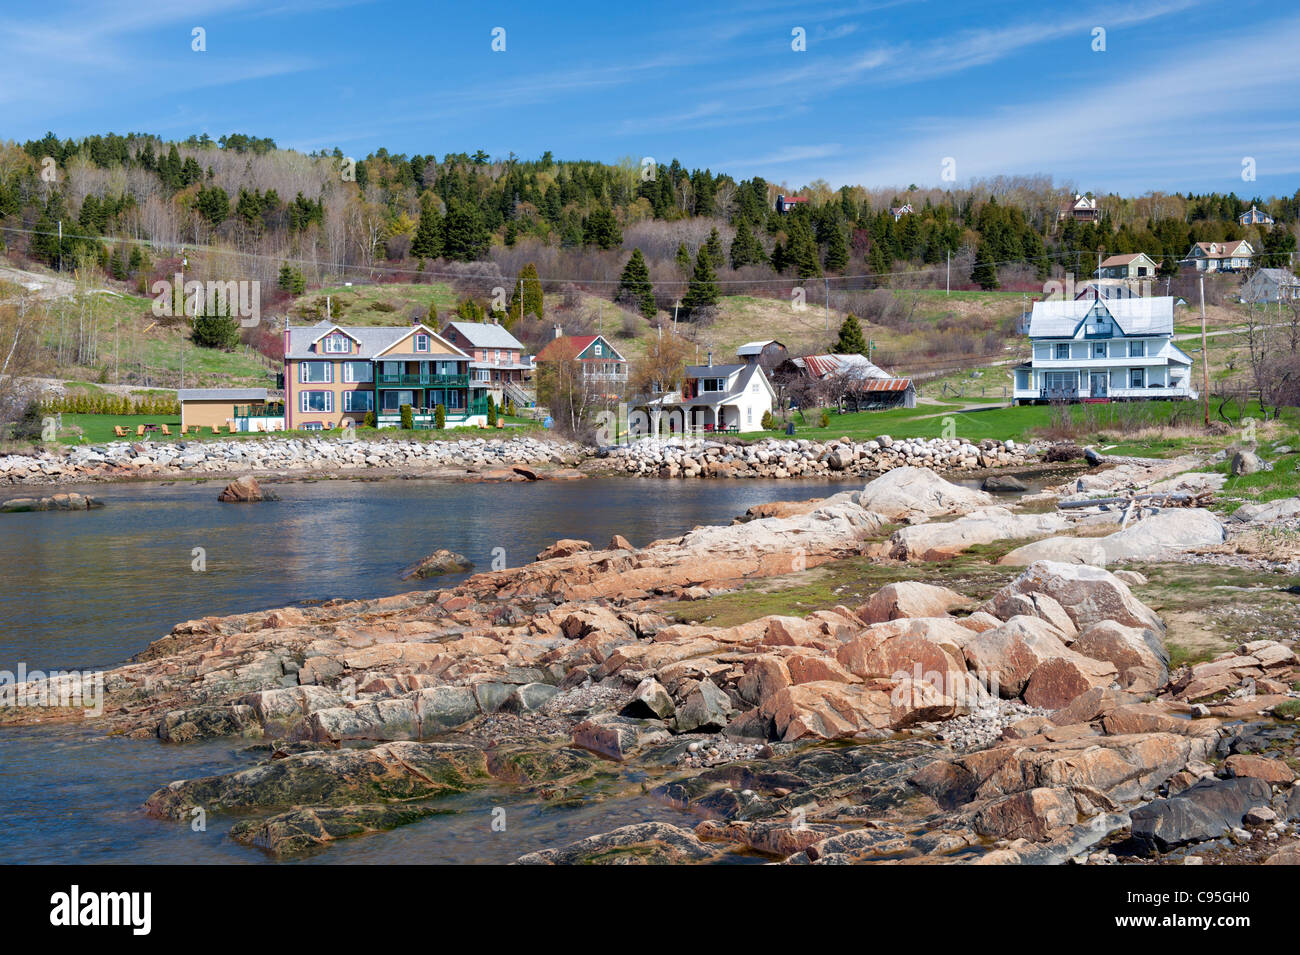 Port-au-Persil, a picturesque village in the region of Charlevoix, province of Quebec, Canada. - Stock Image